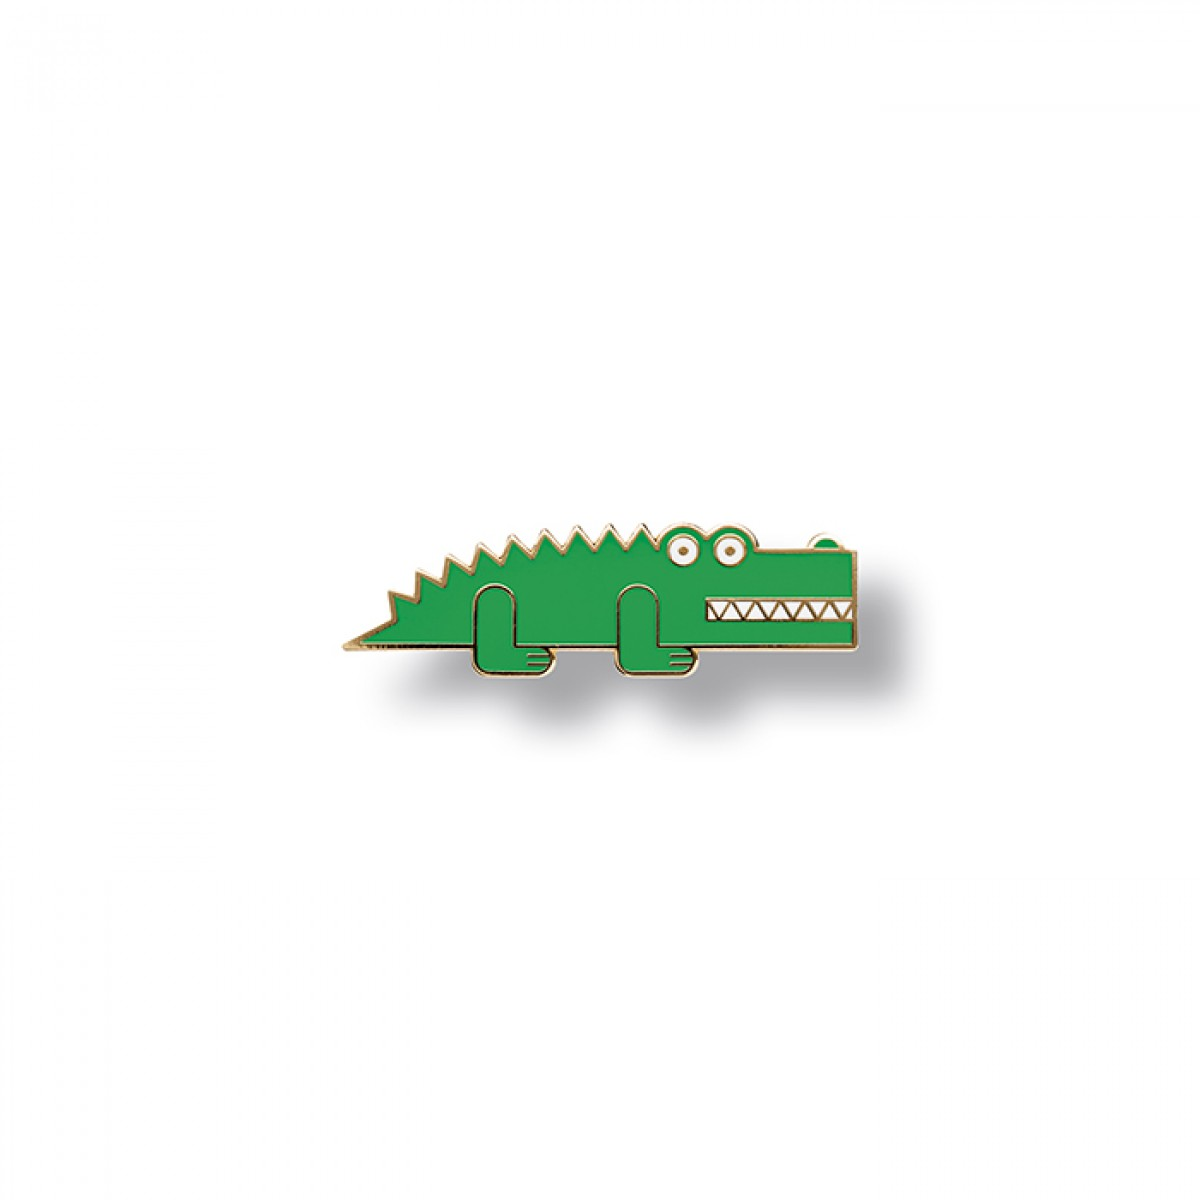 redfries pin crocodile – Pin Hartemaille